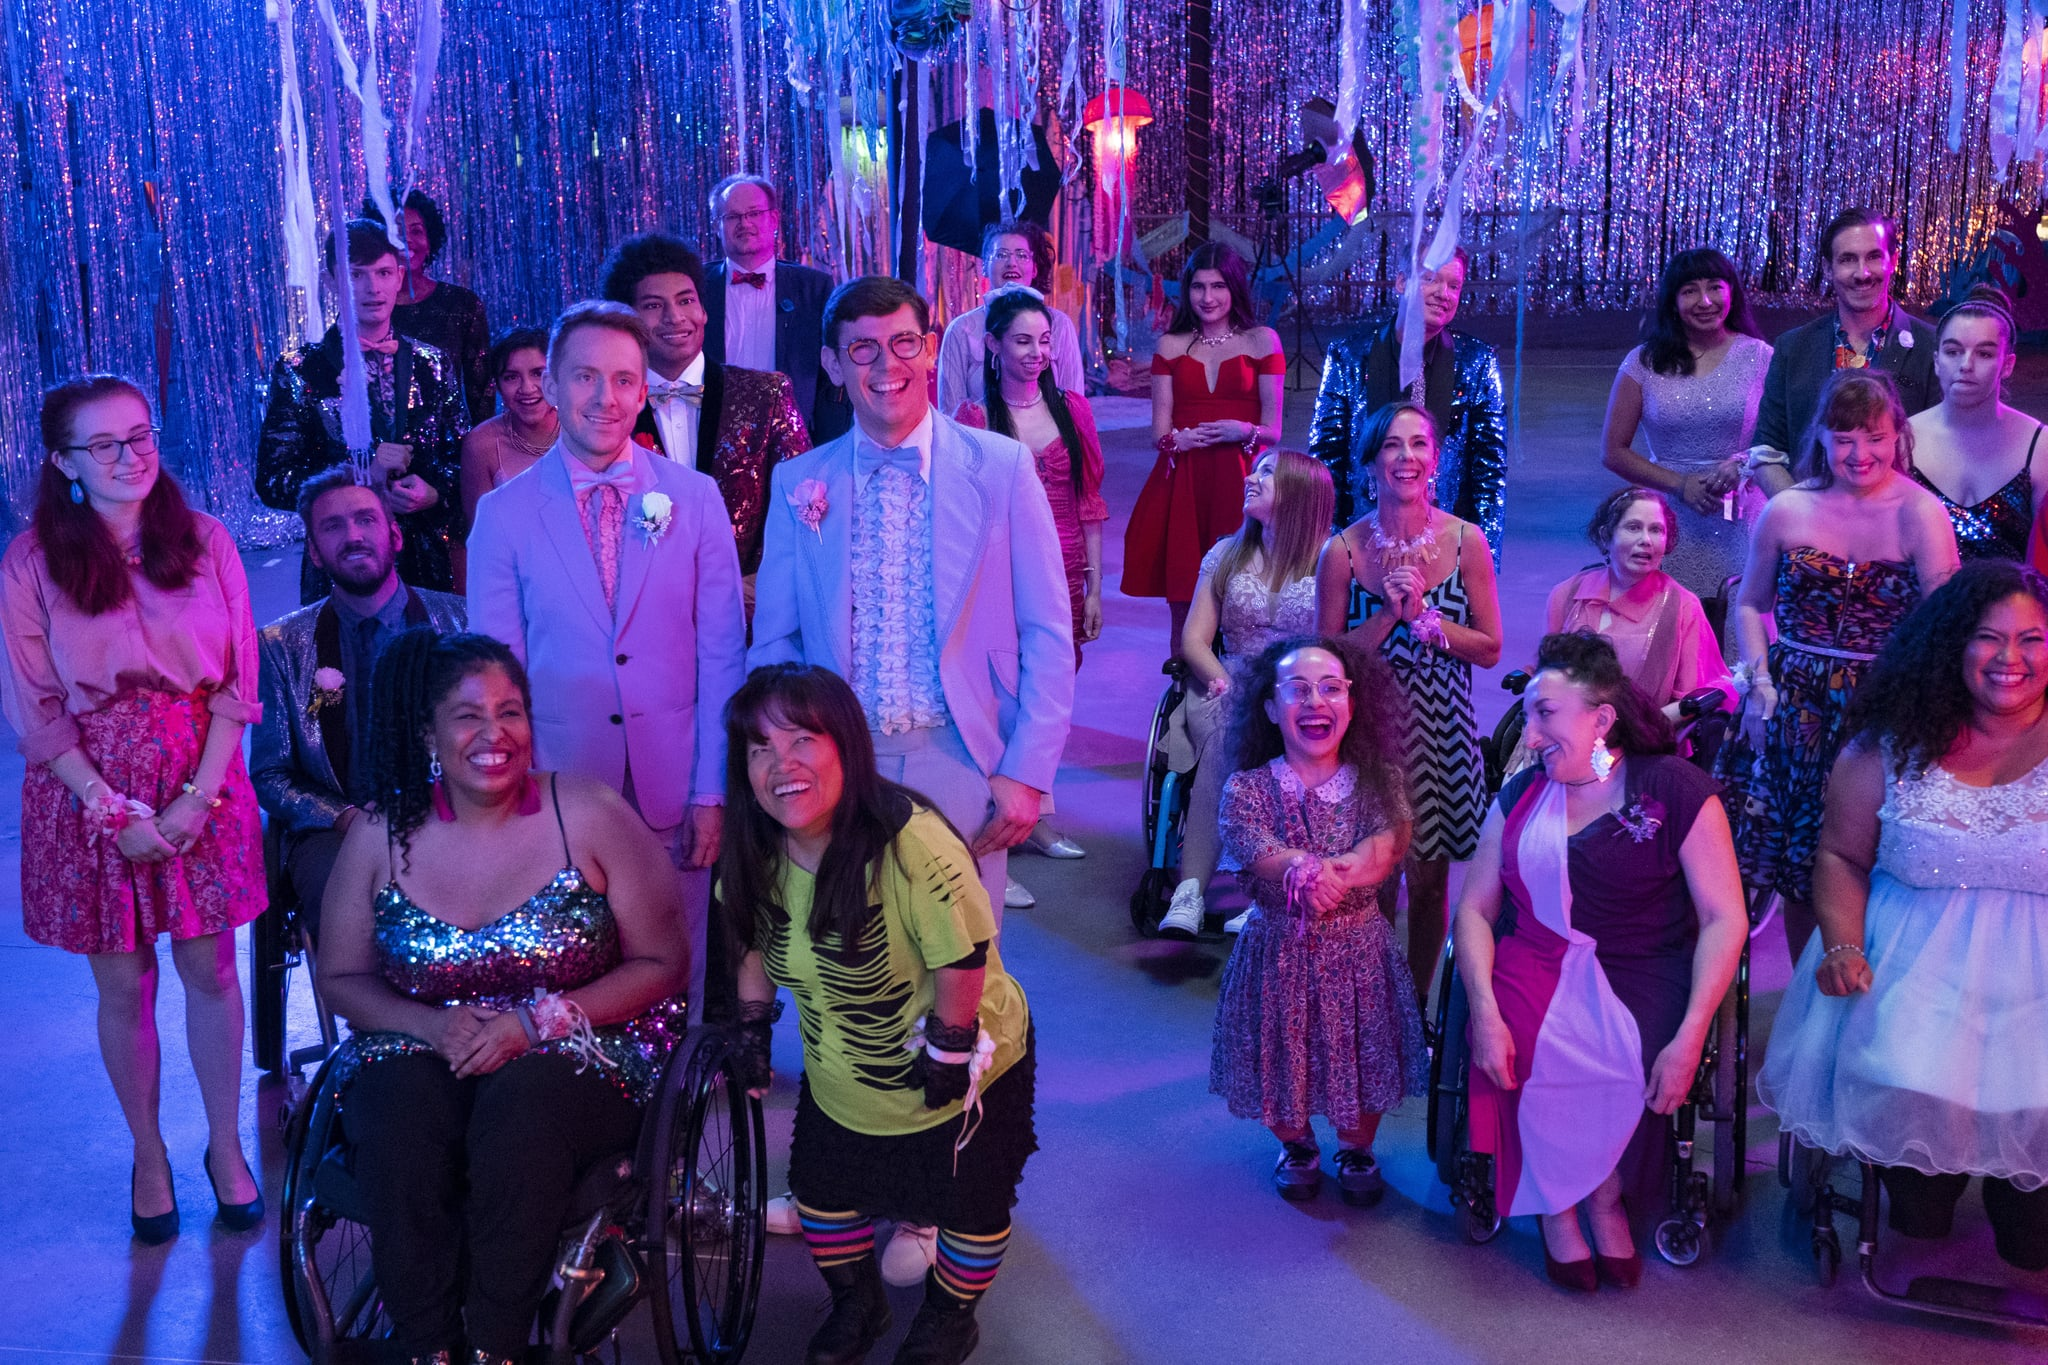 Two men in light blue tuxedos are standing in a room decorated for a party, with festive streamers hanging from the ceiling and walls. They are surrounded by men and women dressed mostly in party dresses and suits. Some of the men and women use a wheelchair, and some are people of short stature.